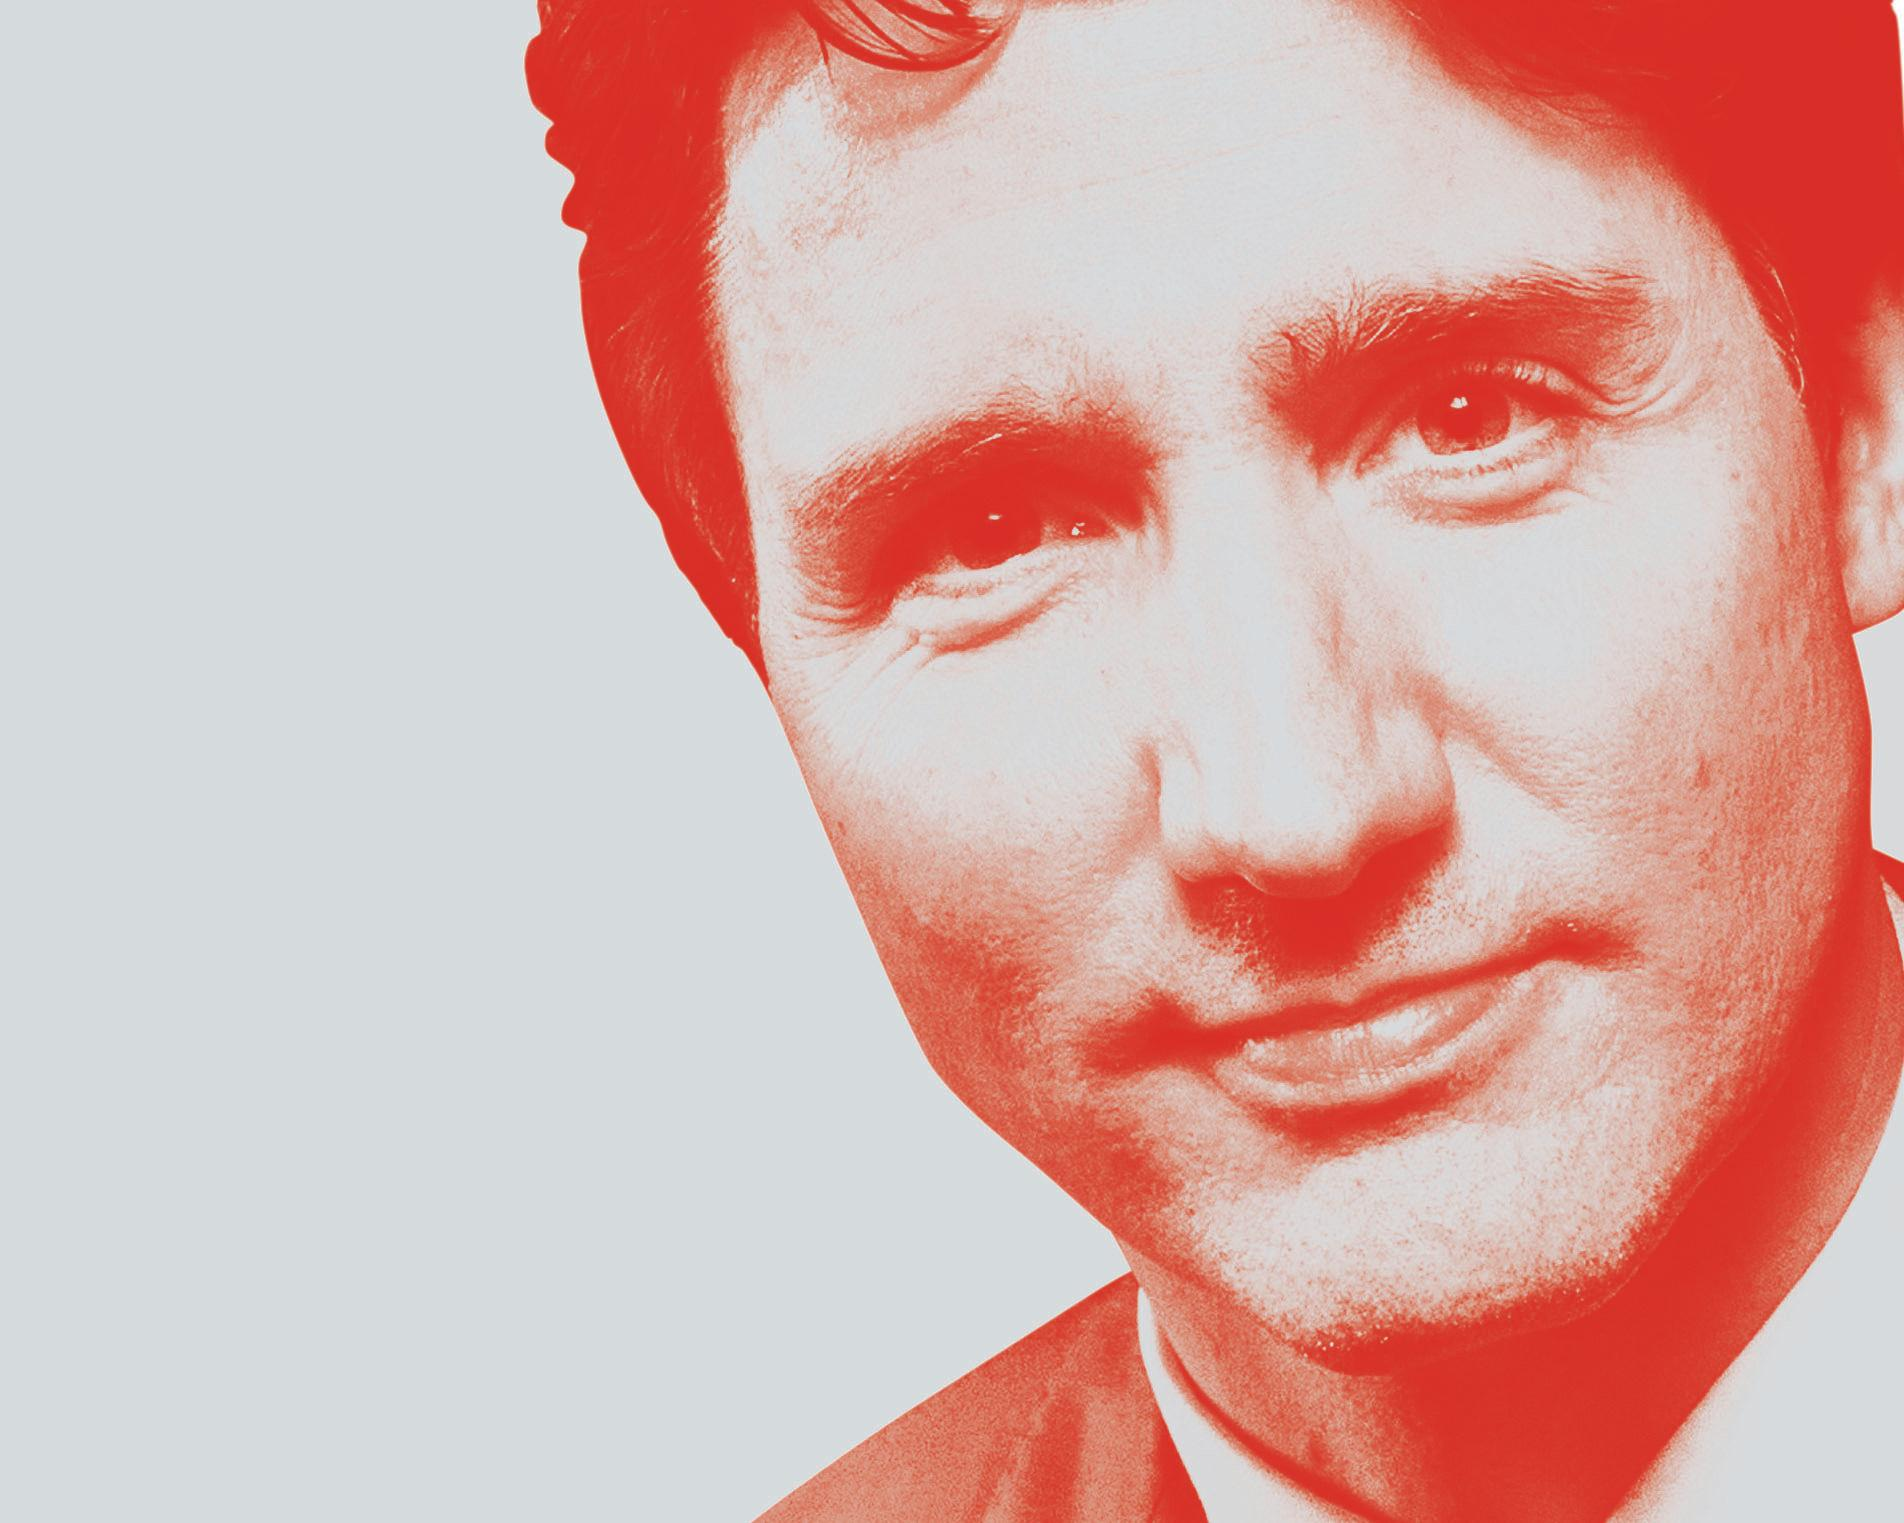 Justin Trudeau: the rise and fall of a political brand